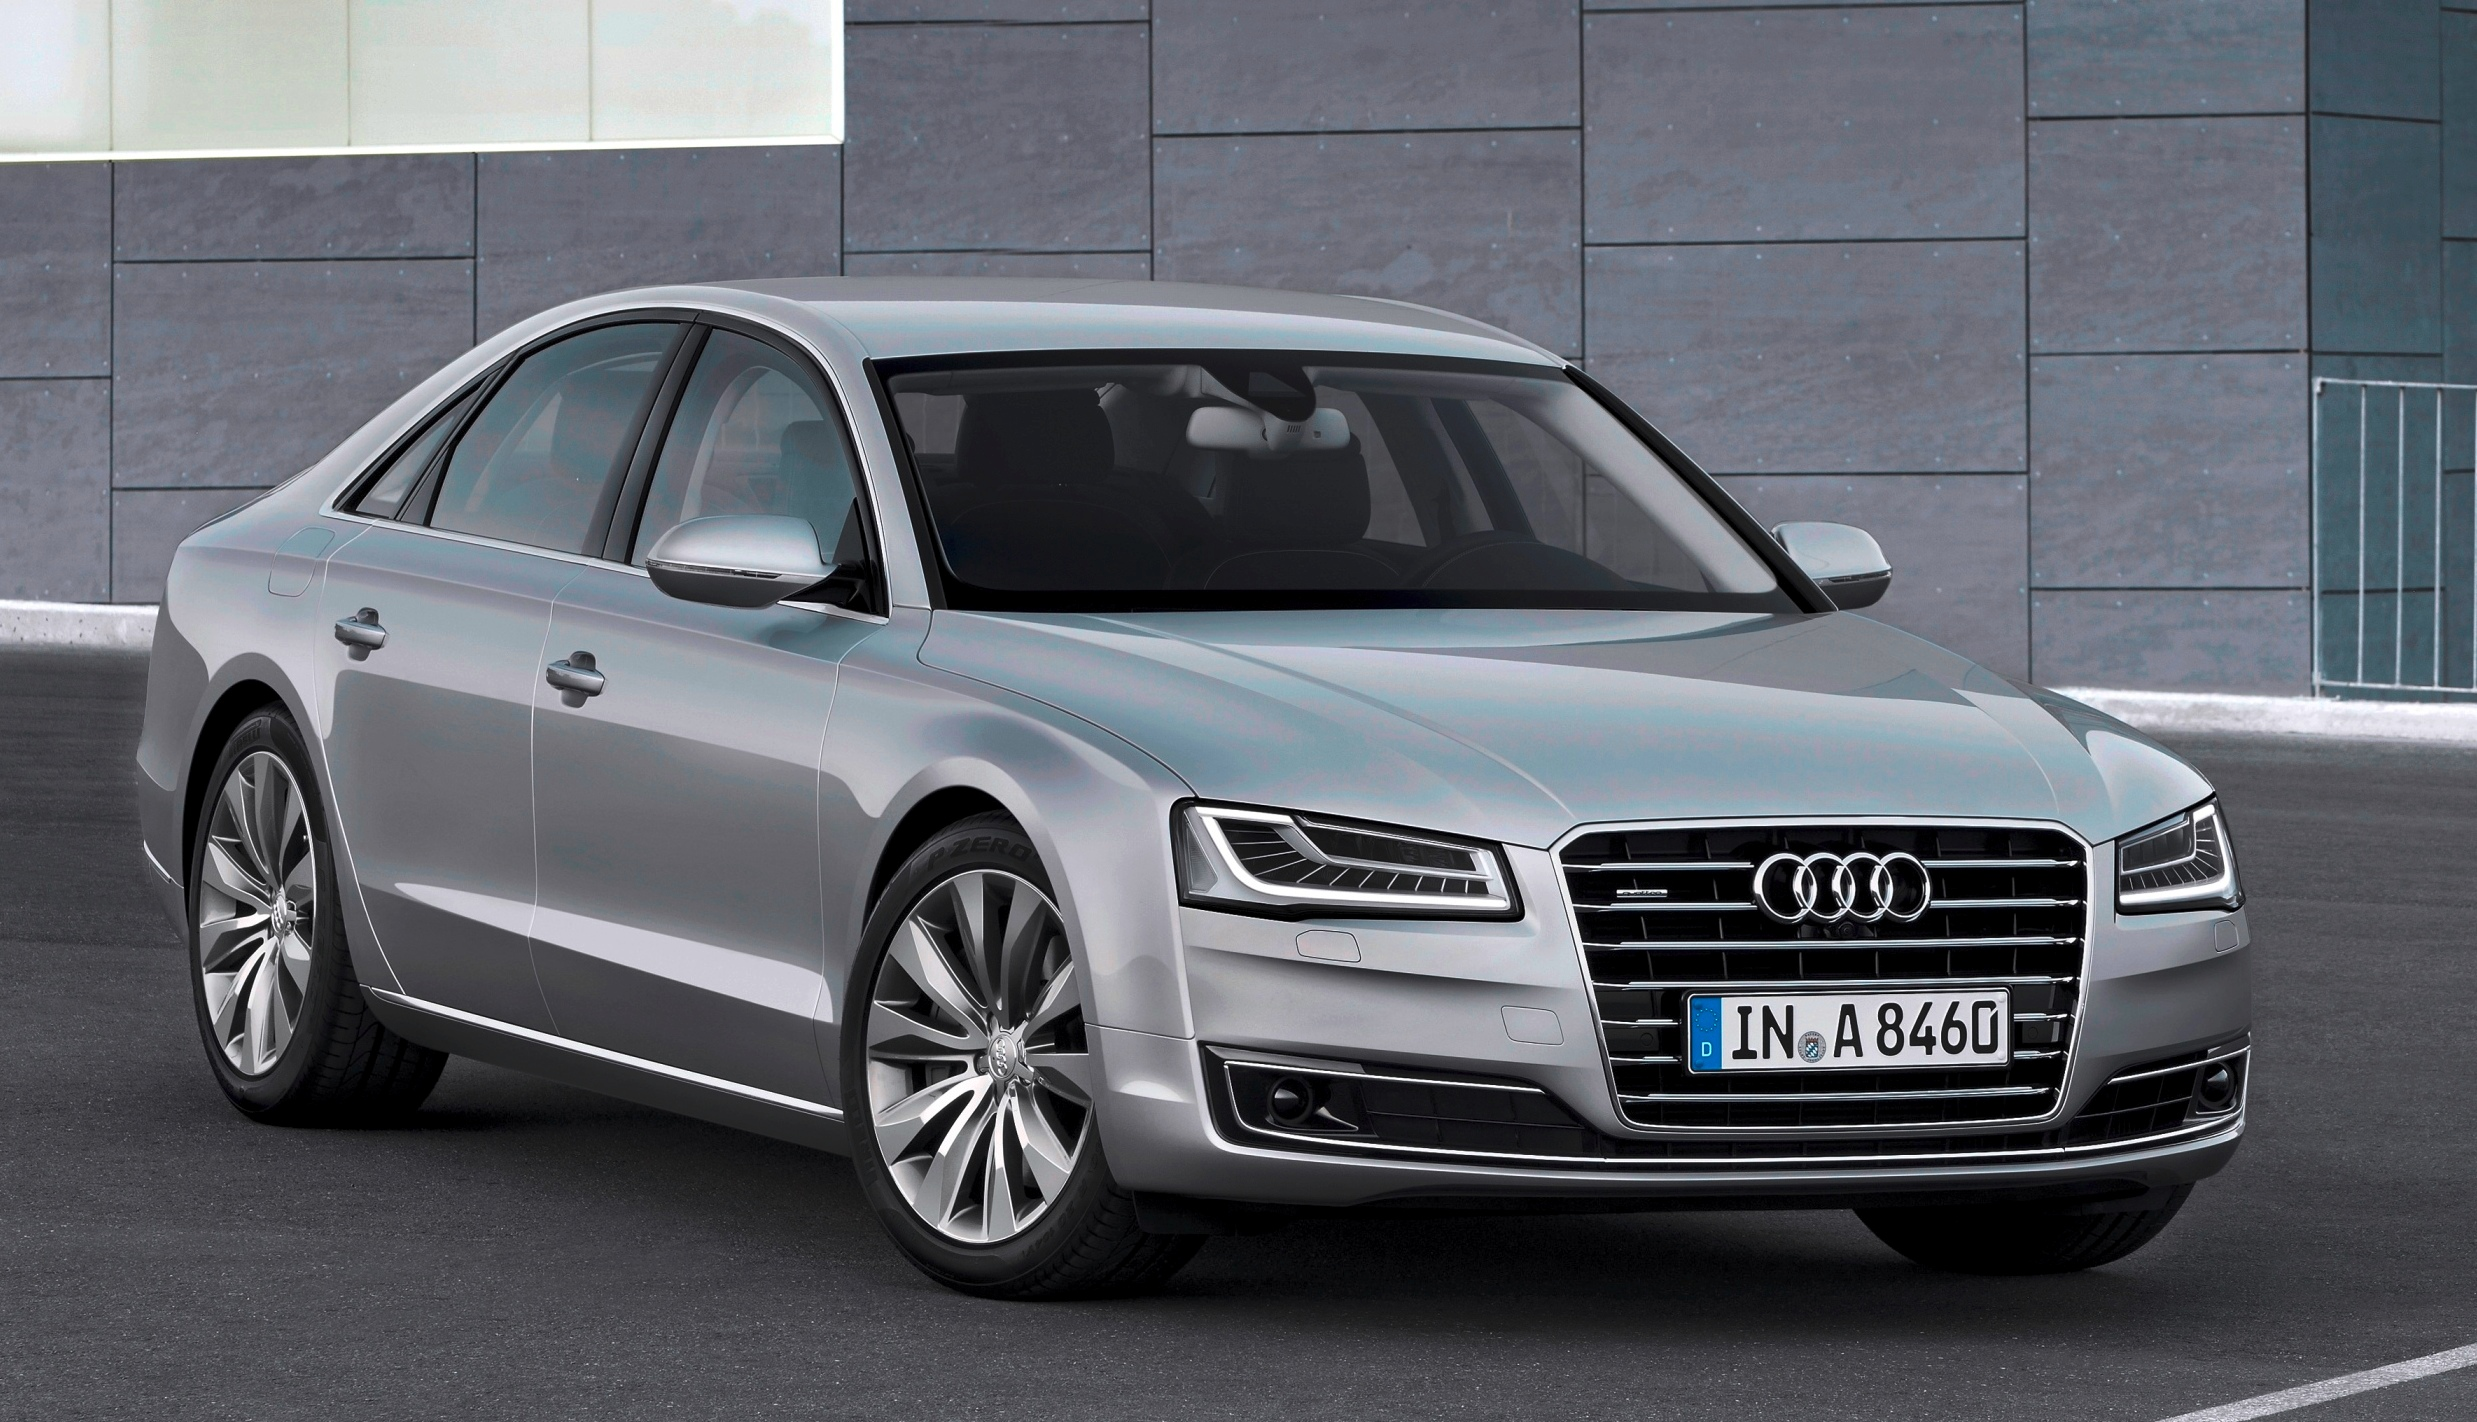 2016 audi a8 e tron review gallery top speed. Black Bedroom Furniture Sets. Home Design Ideas